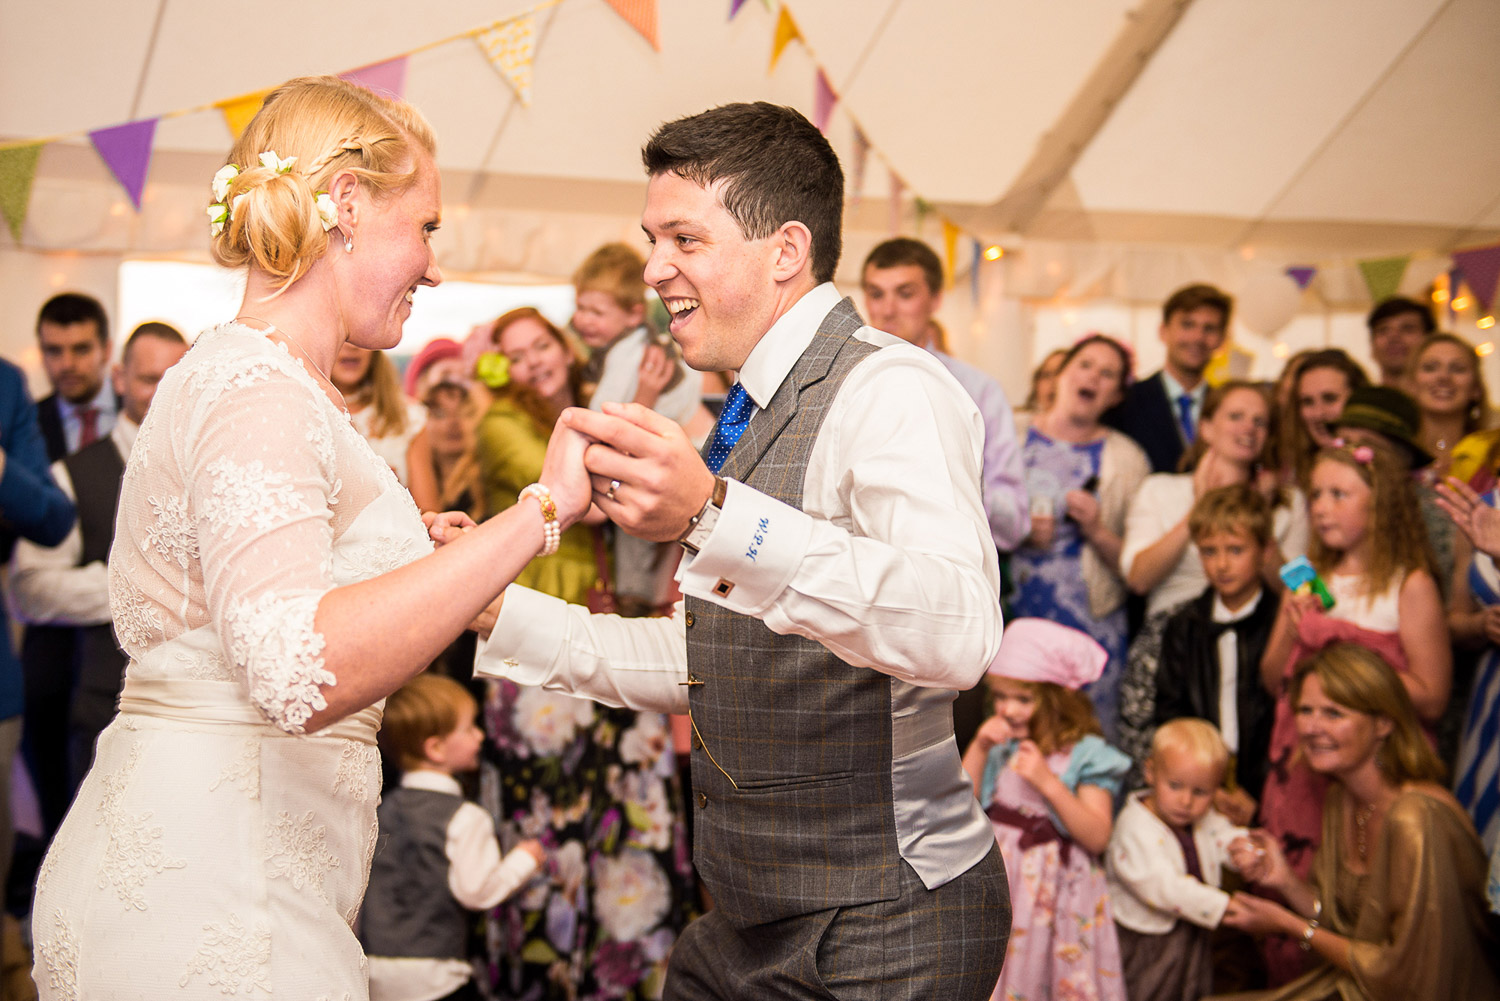 Copy of bride and groom doing their first dance at their marquee wedding